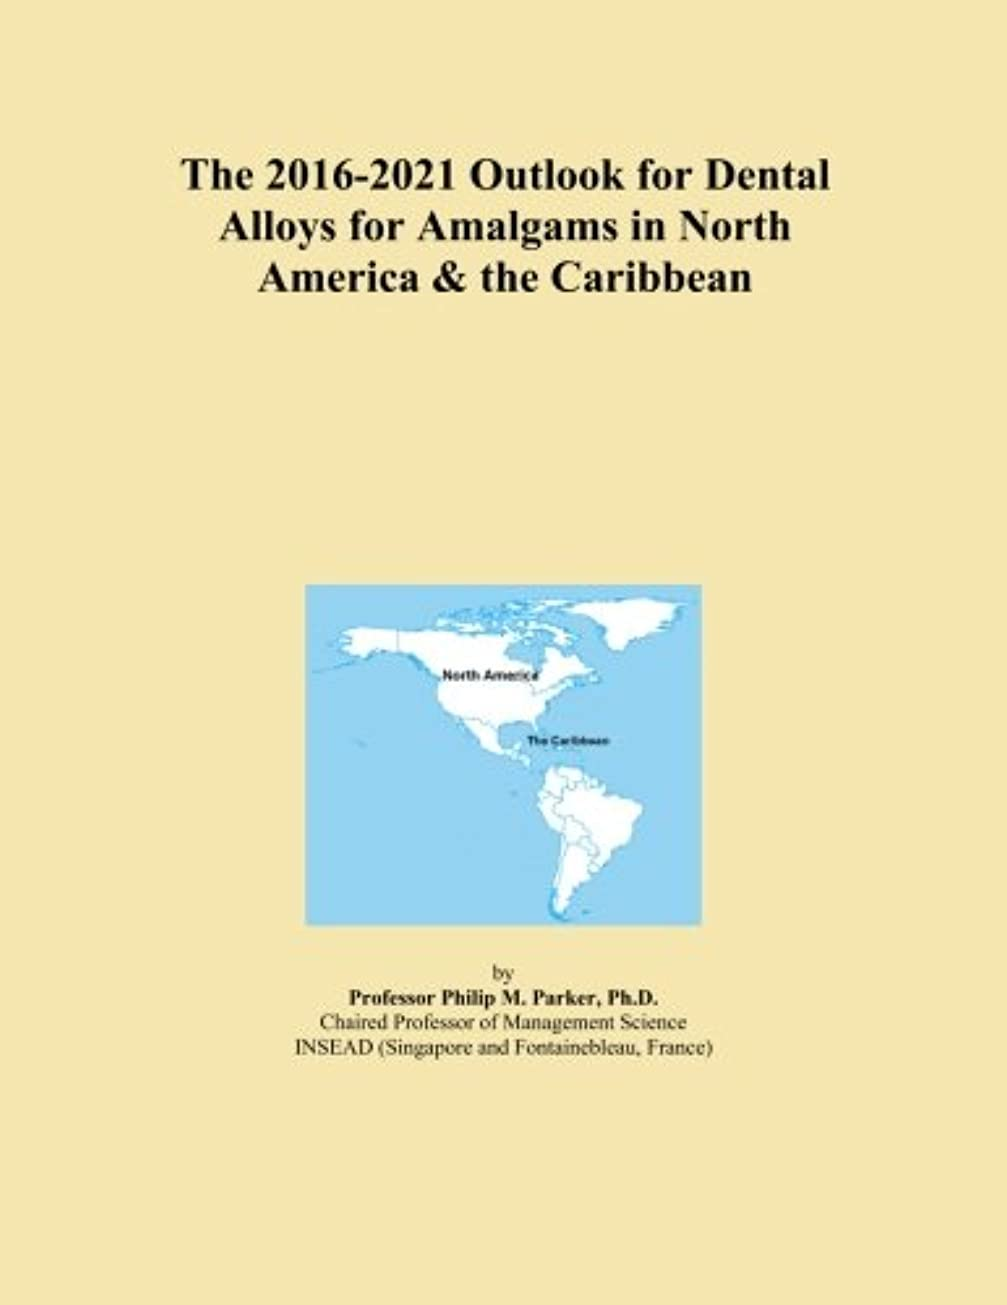 ノベルティ咽頭チョークThe 2016-2021 Outlook for Dental Alloys for Amalgams in North America & the Caribbean